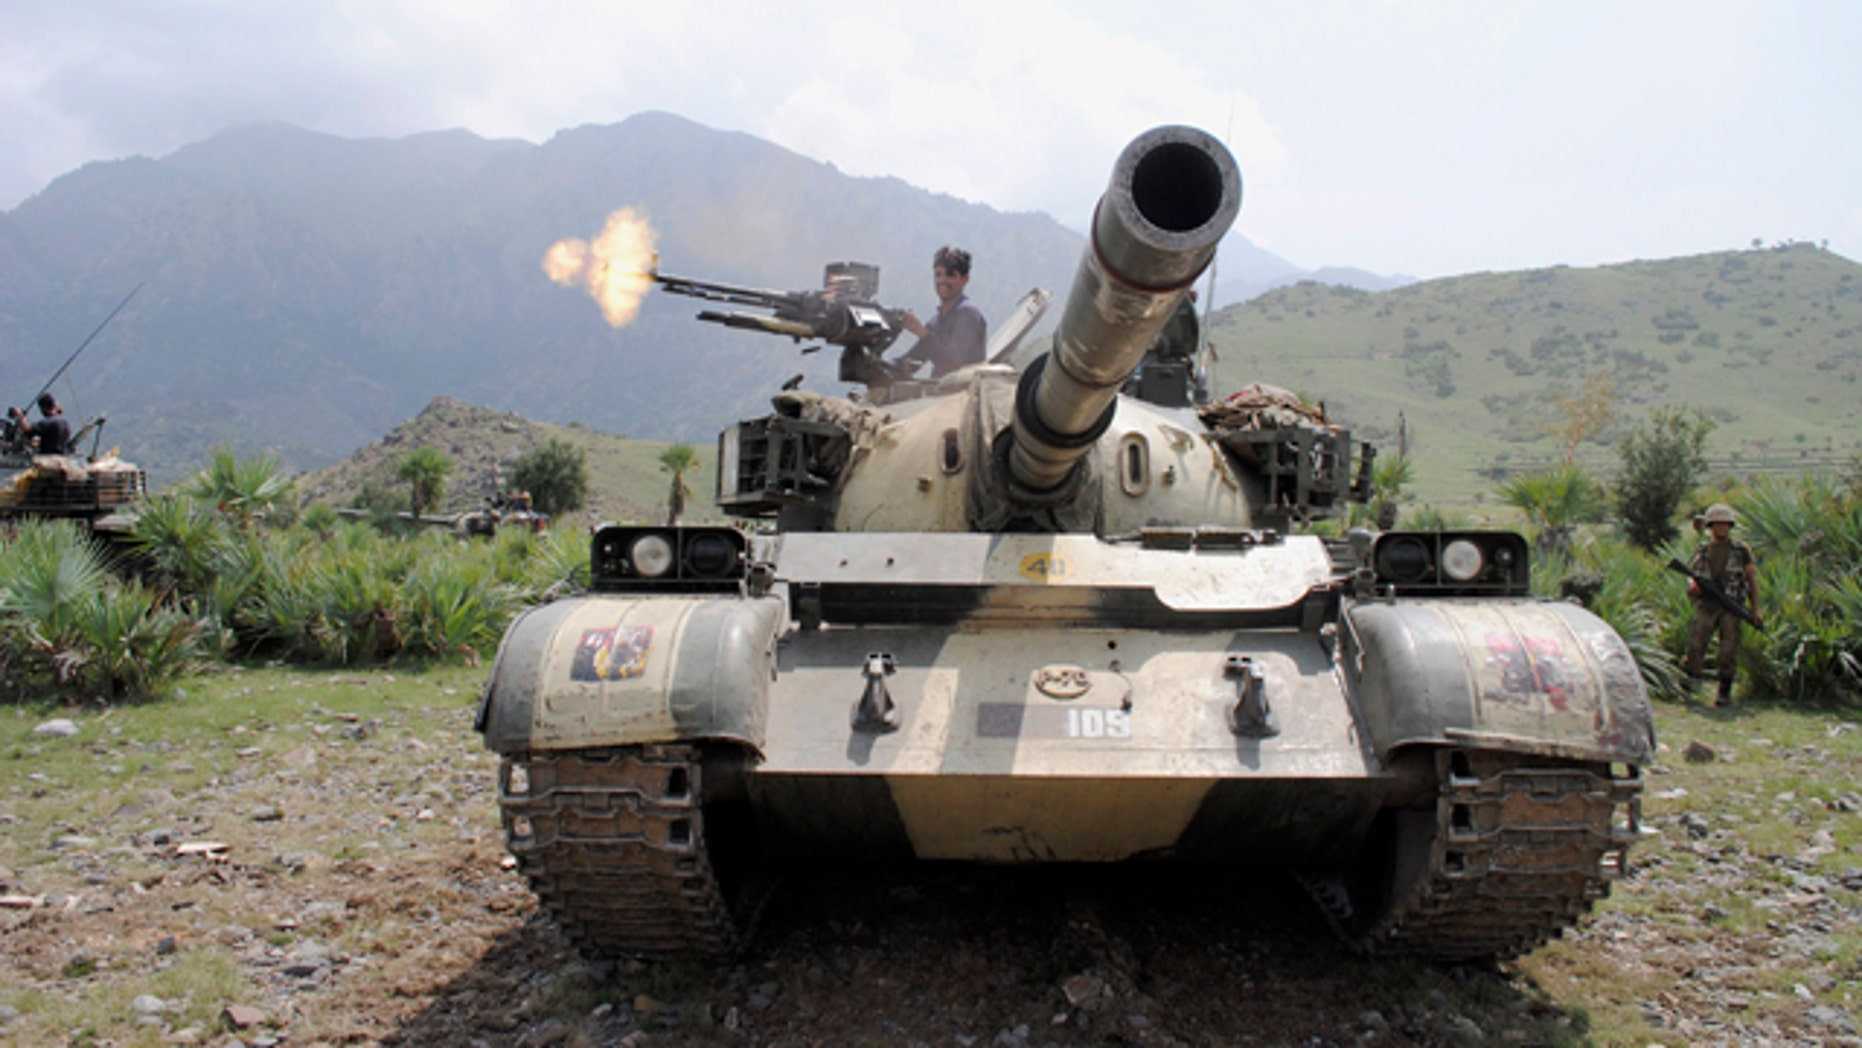 July 10: A Pakistani army soldier fires toward a target at a forward base during a military operation against militants in Pakistan's Khurram tribal region. A military operation in Kurram tribal region has been launched to clear the area of terrorists involved in various terrorist activities, including kidnapping and killing of locals, suicide attacks and blocking the road connecting lower with upper Kurram, Pakistani army spokesman Maj. Gen. Athar Abbas said.